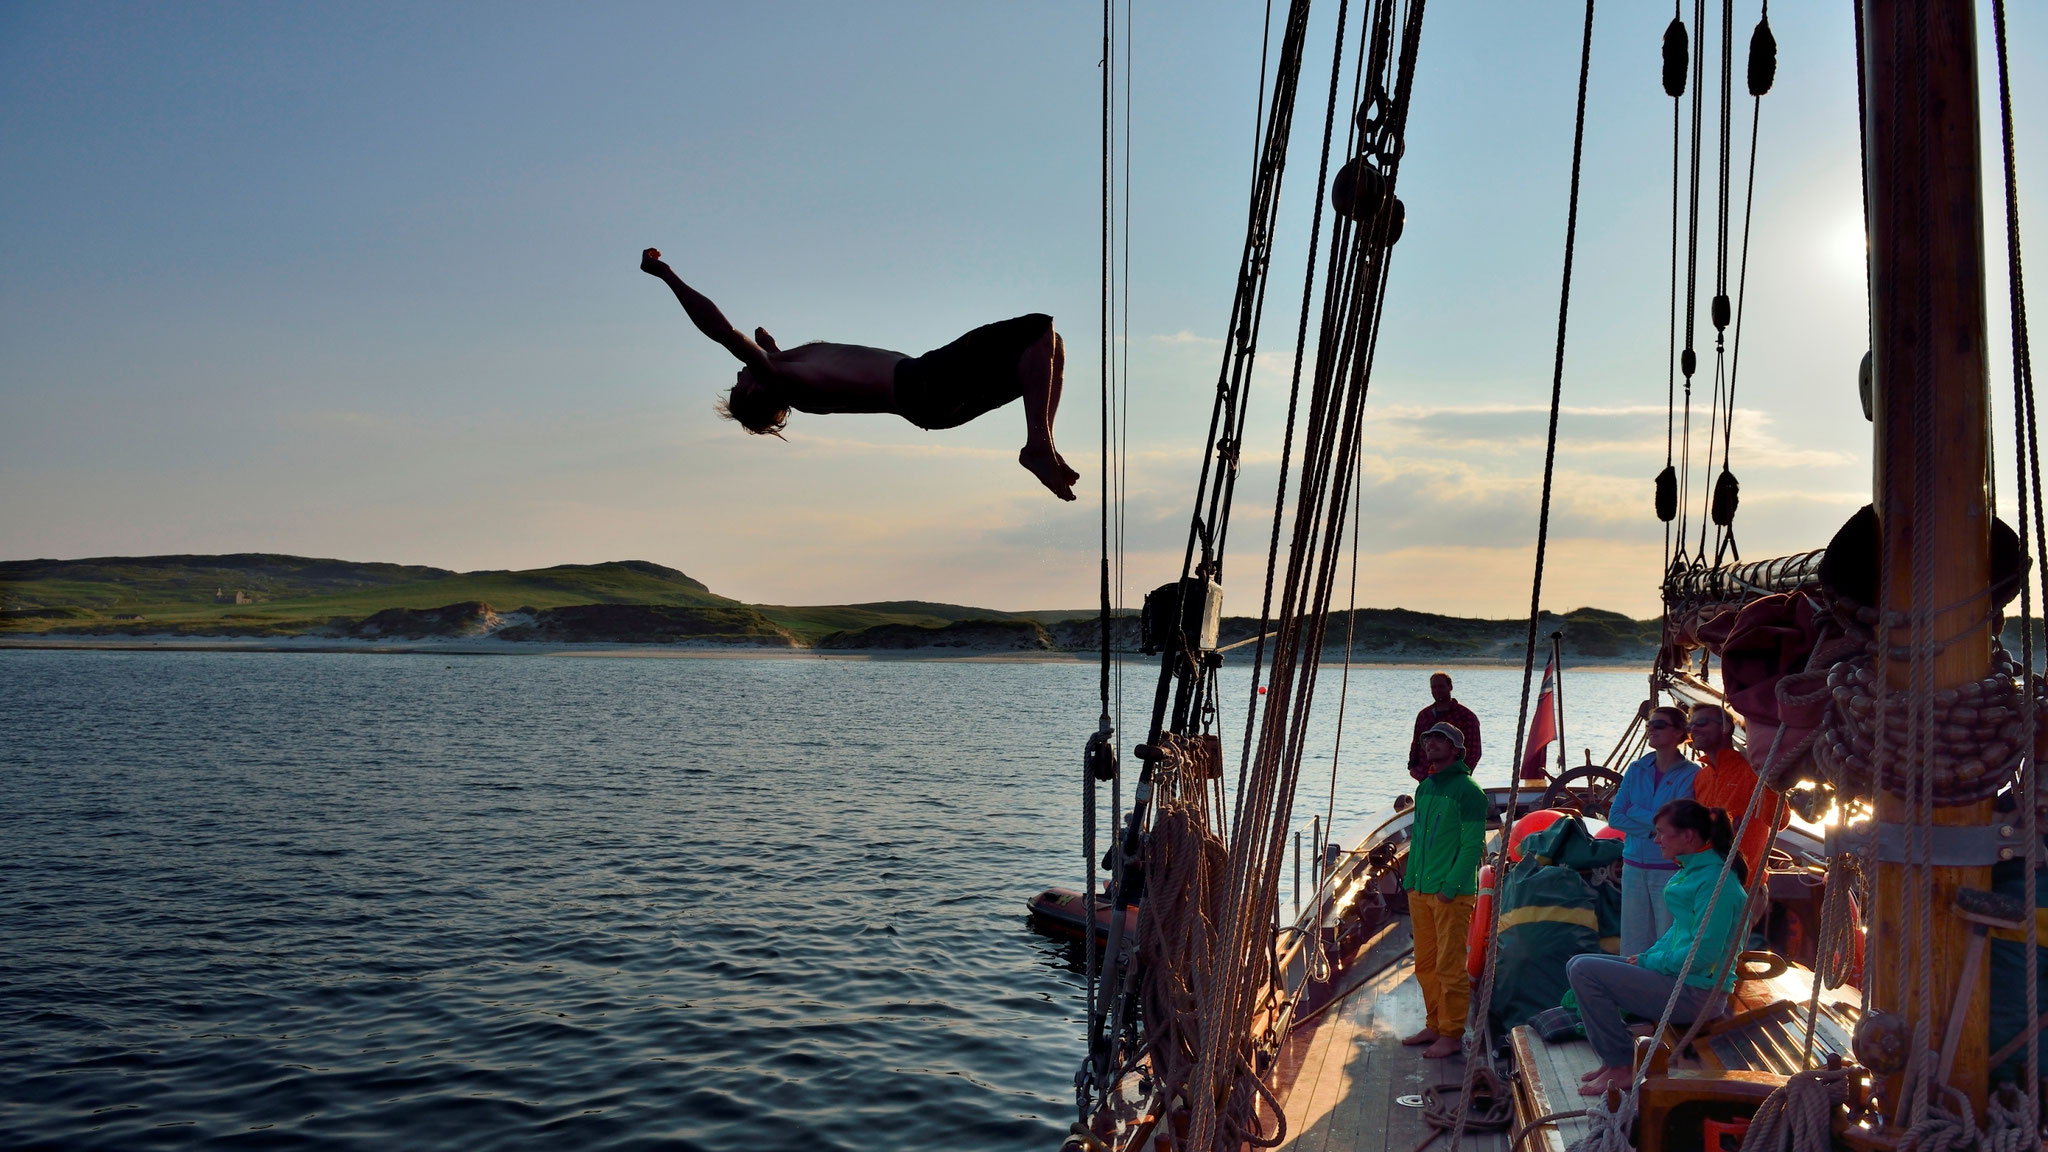 Climb and Sail Scotland © Ralf Gantzhorn